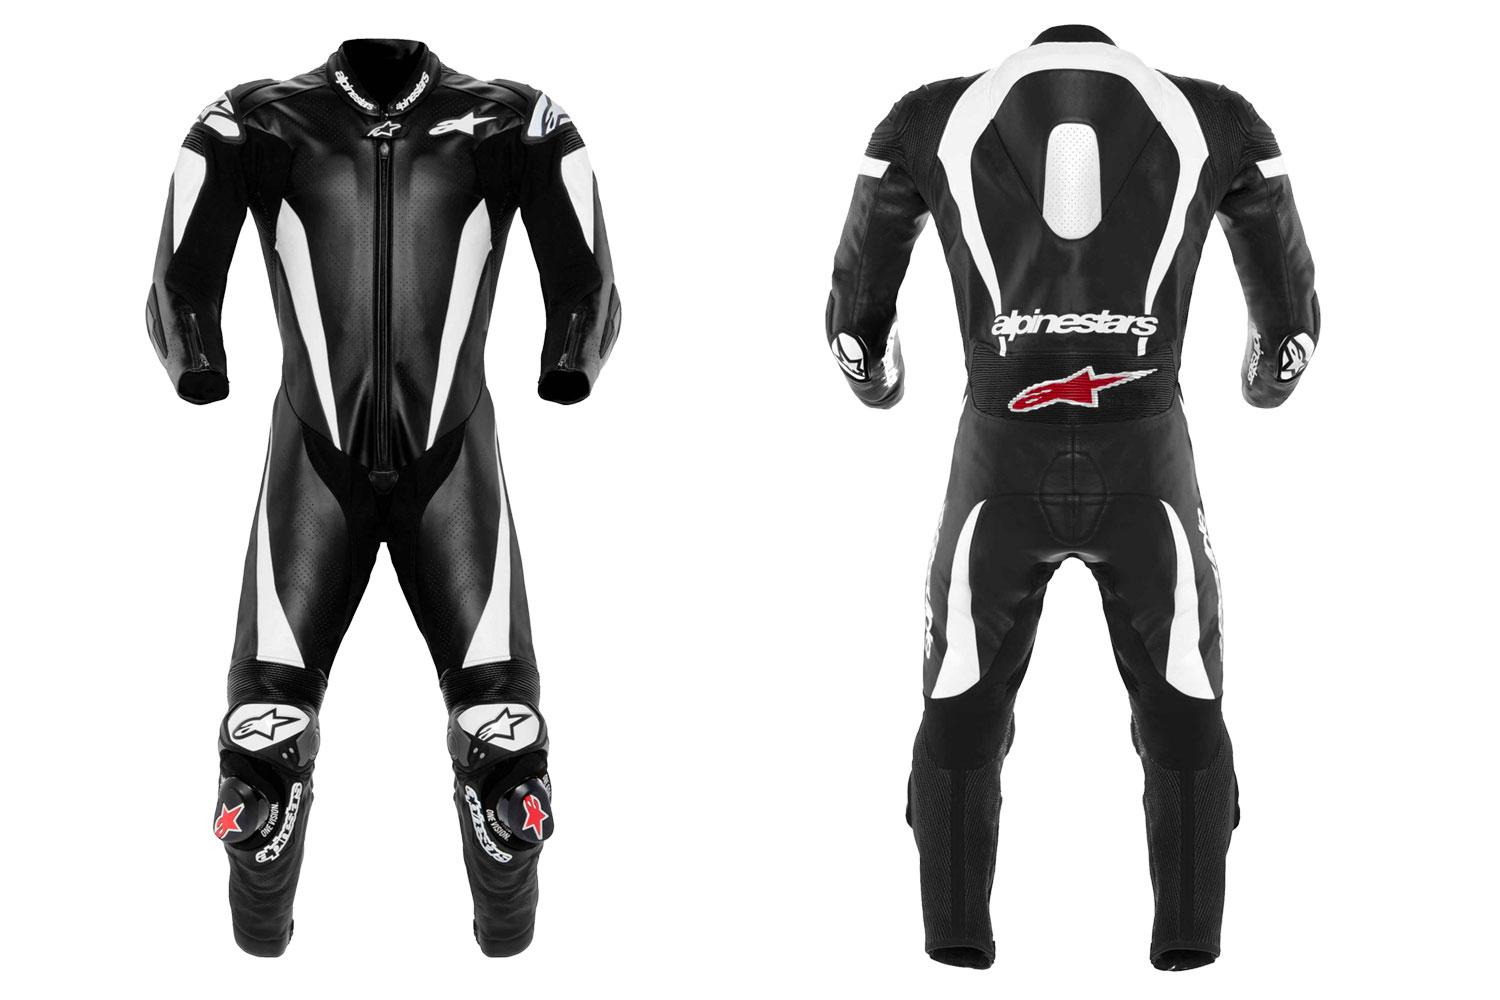 alpinestars tech air racing suit could save motorcyclist 39 s life digital trends. Black Bedroom Furniture Sets. Home Design Ideas